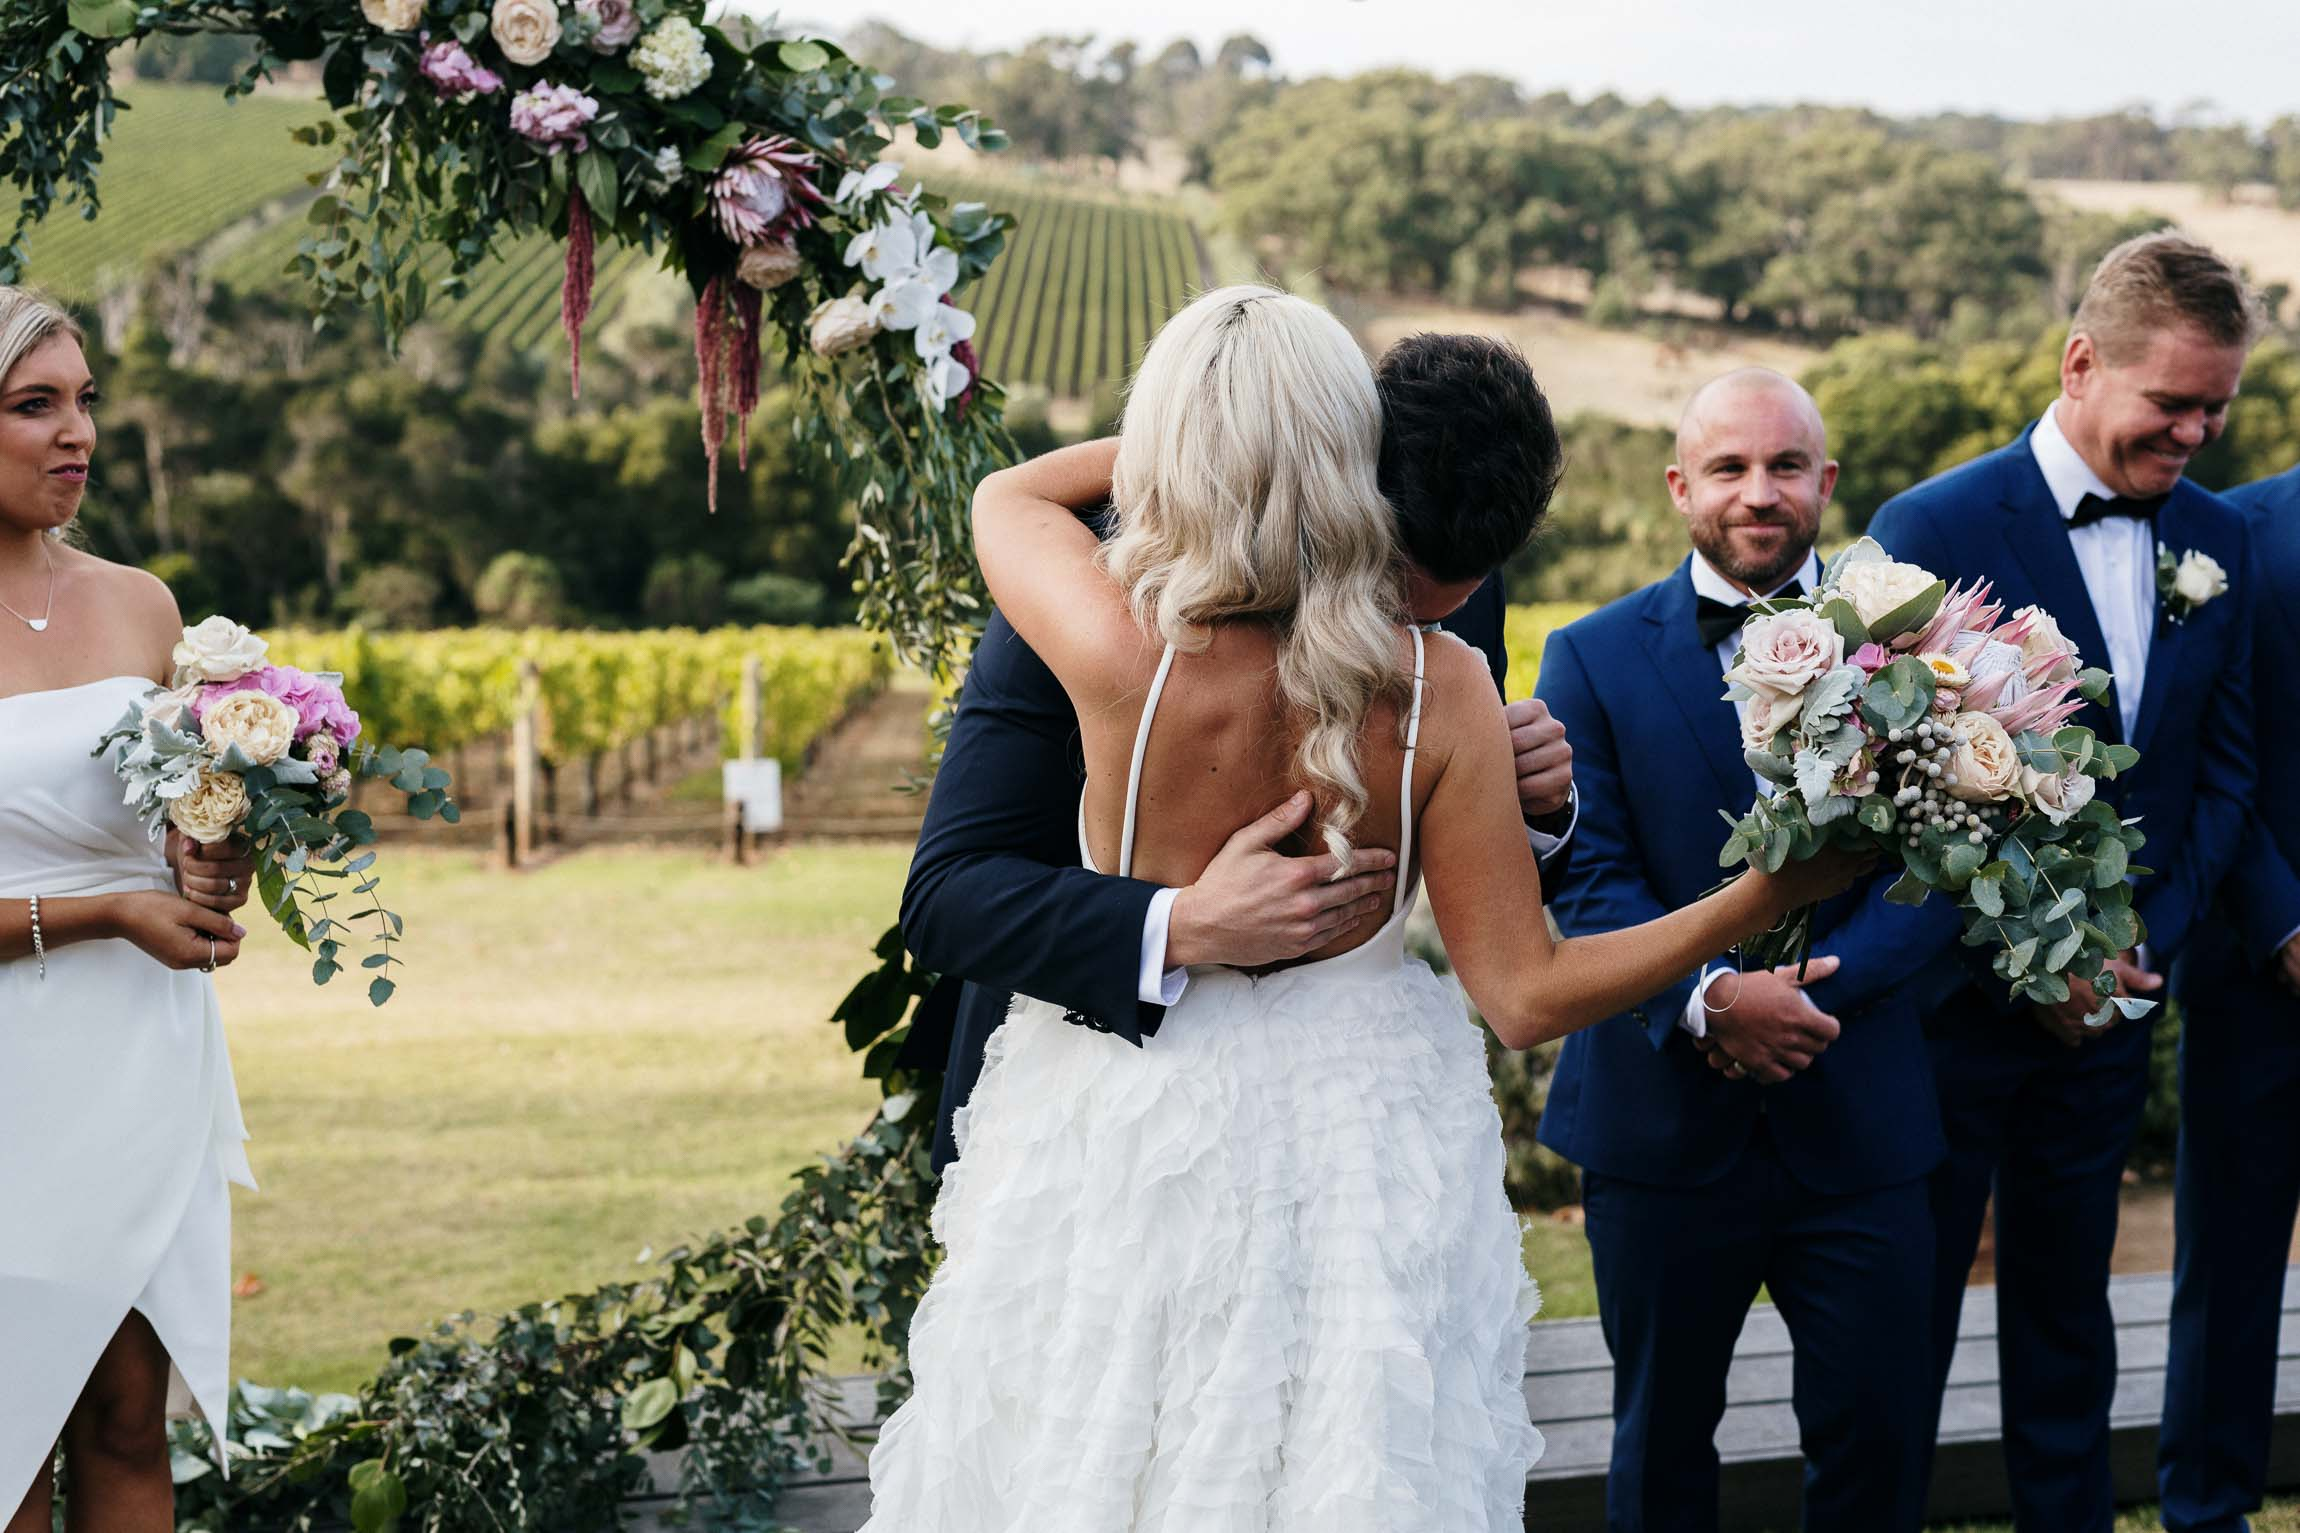 lachlan-scallion-melbourne-victoria-austrlia-mornington-peninsula-candid-relaxed-natural-chilled-wedding-photographyemma-will-tucks-wine-196.jpg